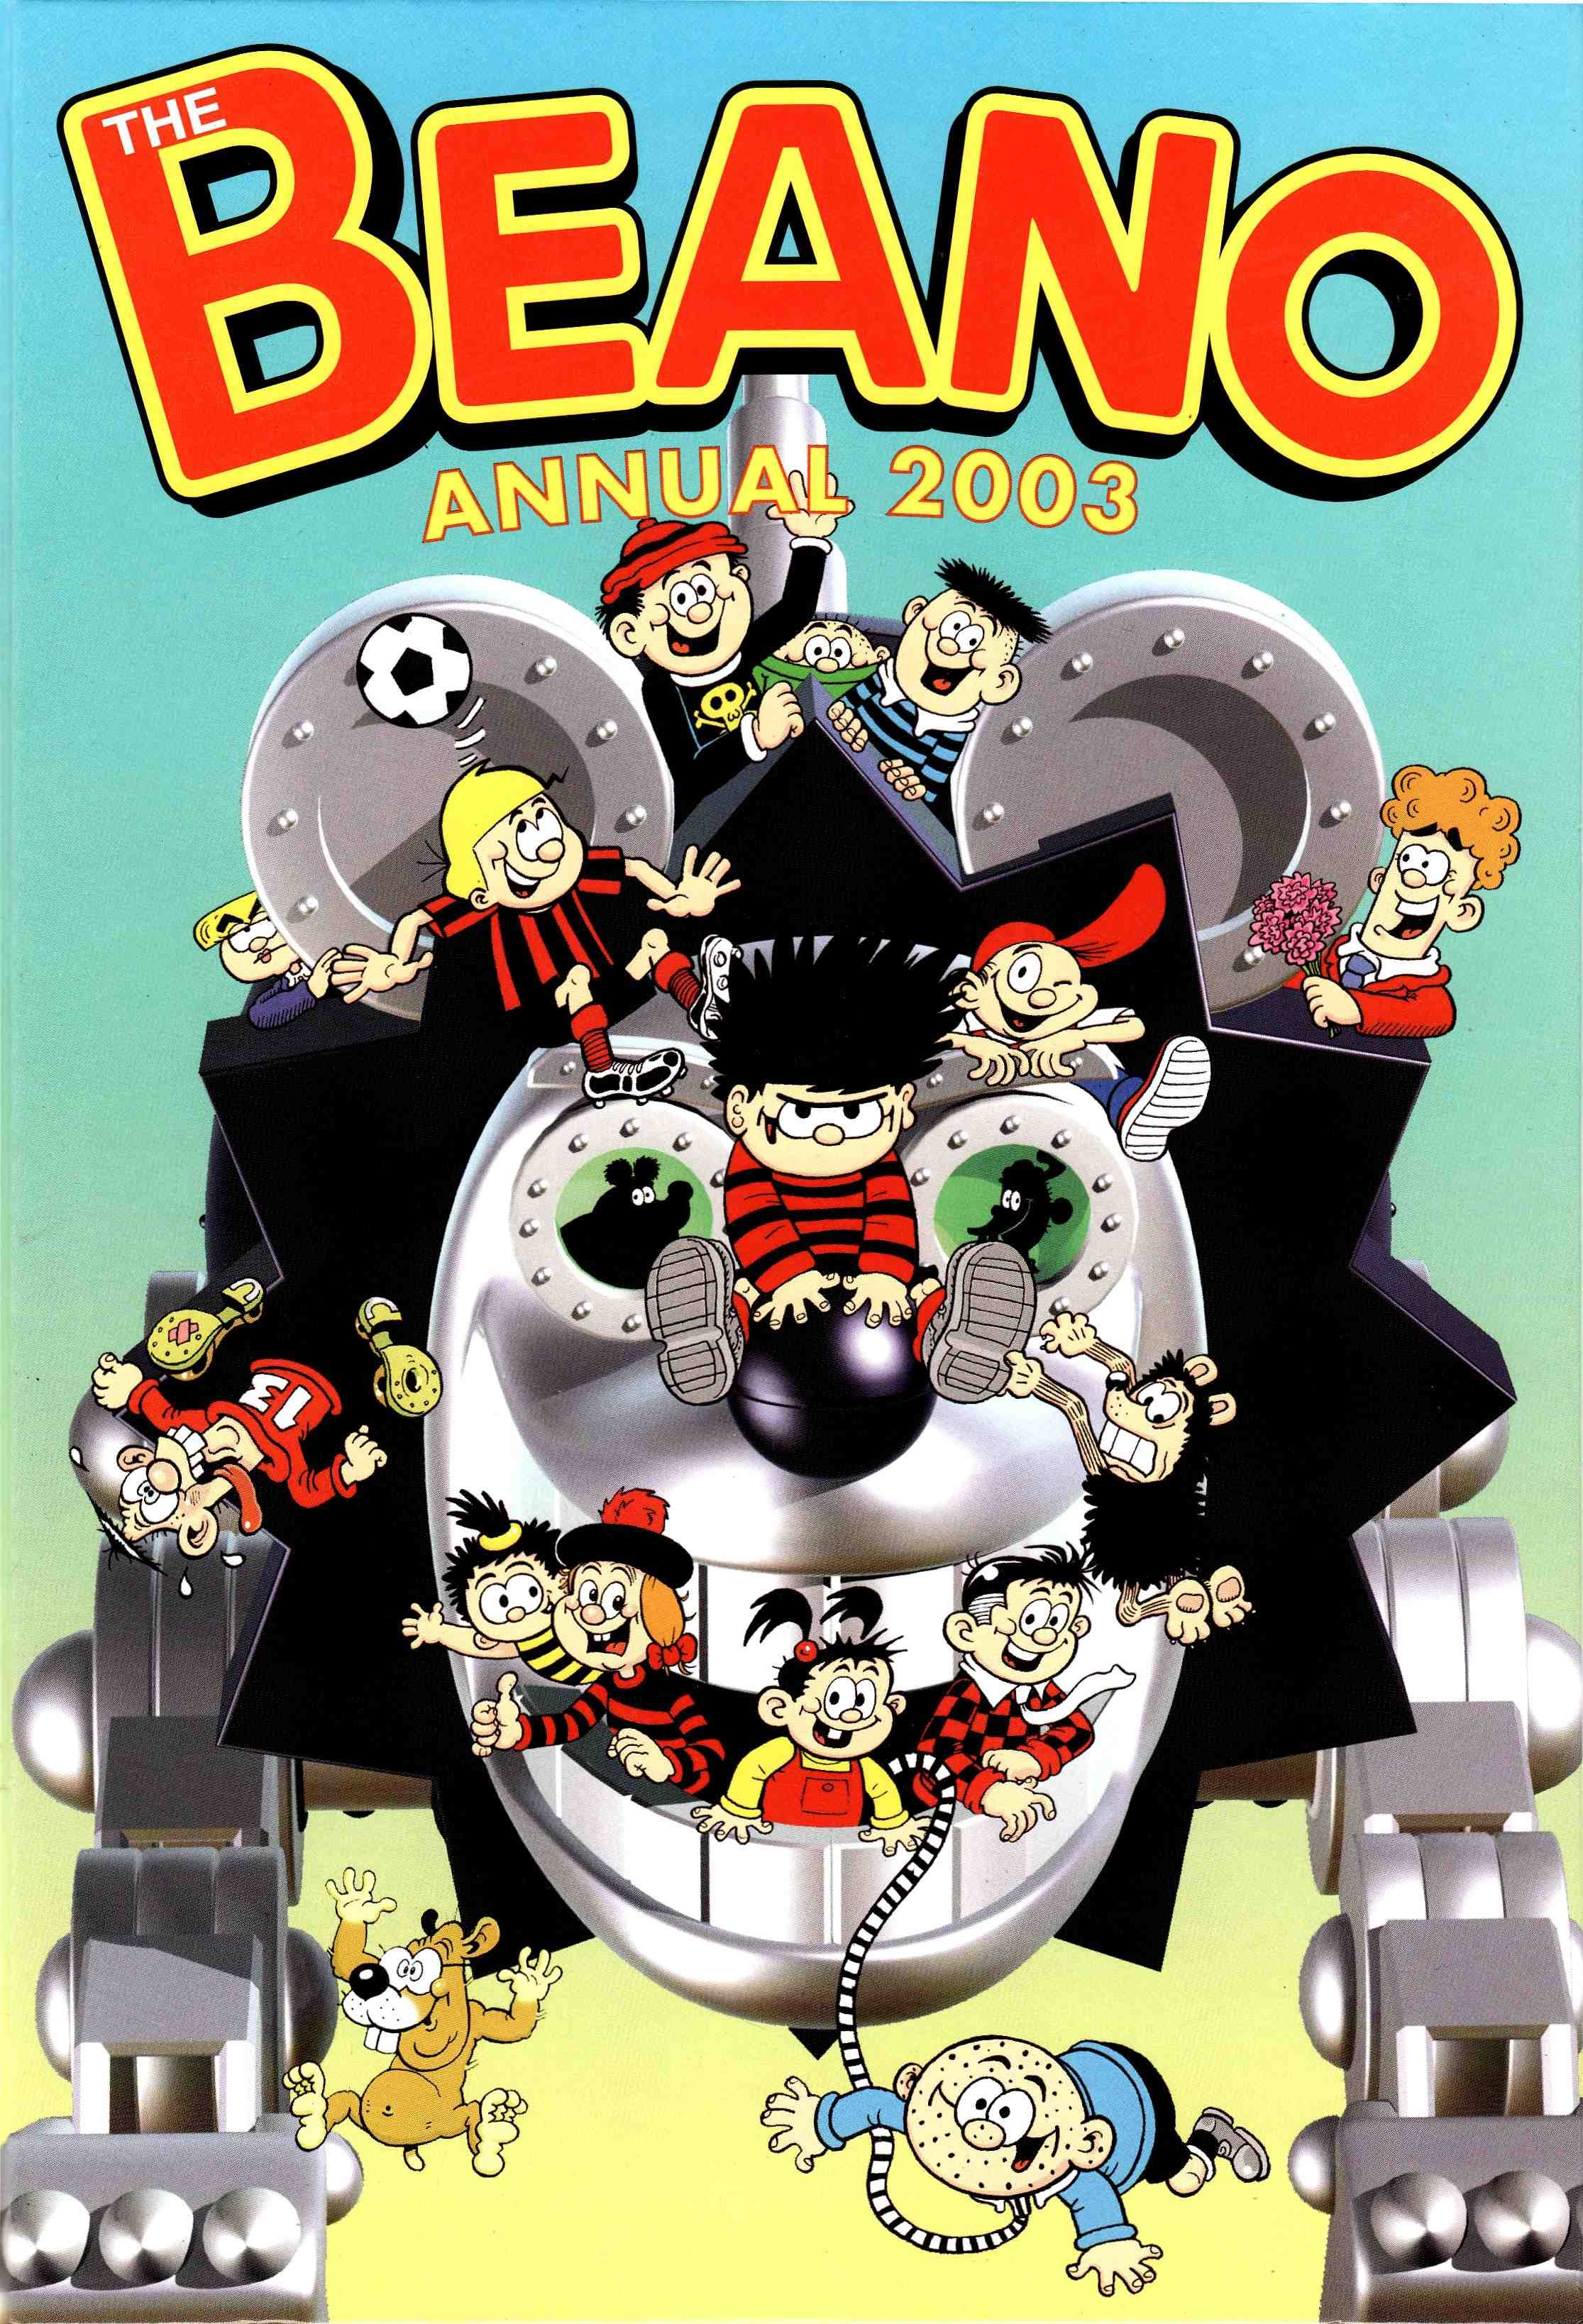 The Beano Book (Annual) 2003 Page 1